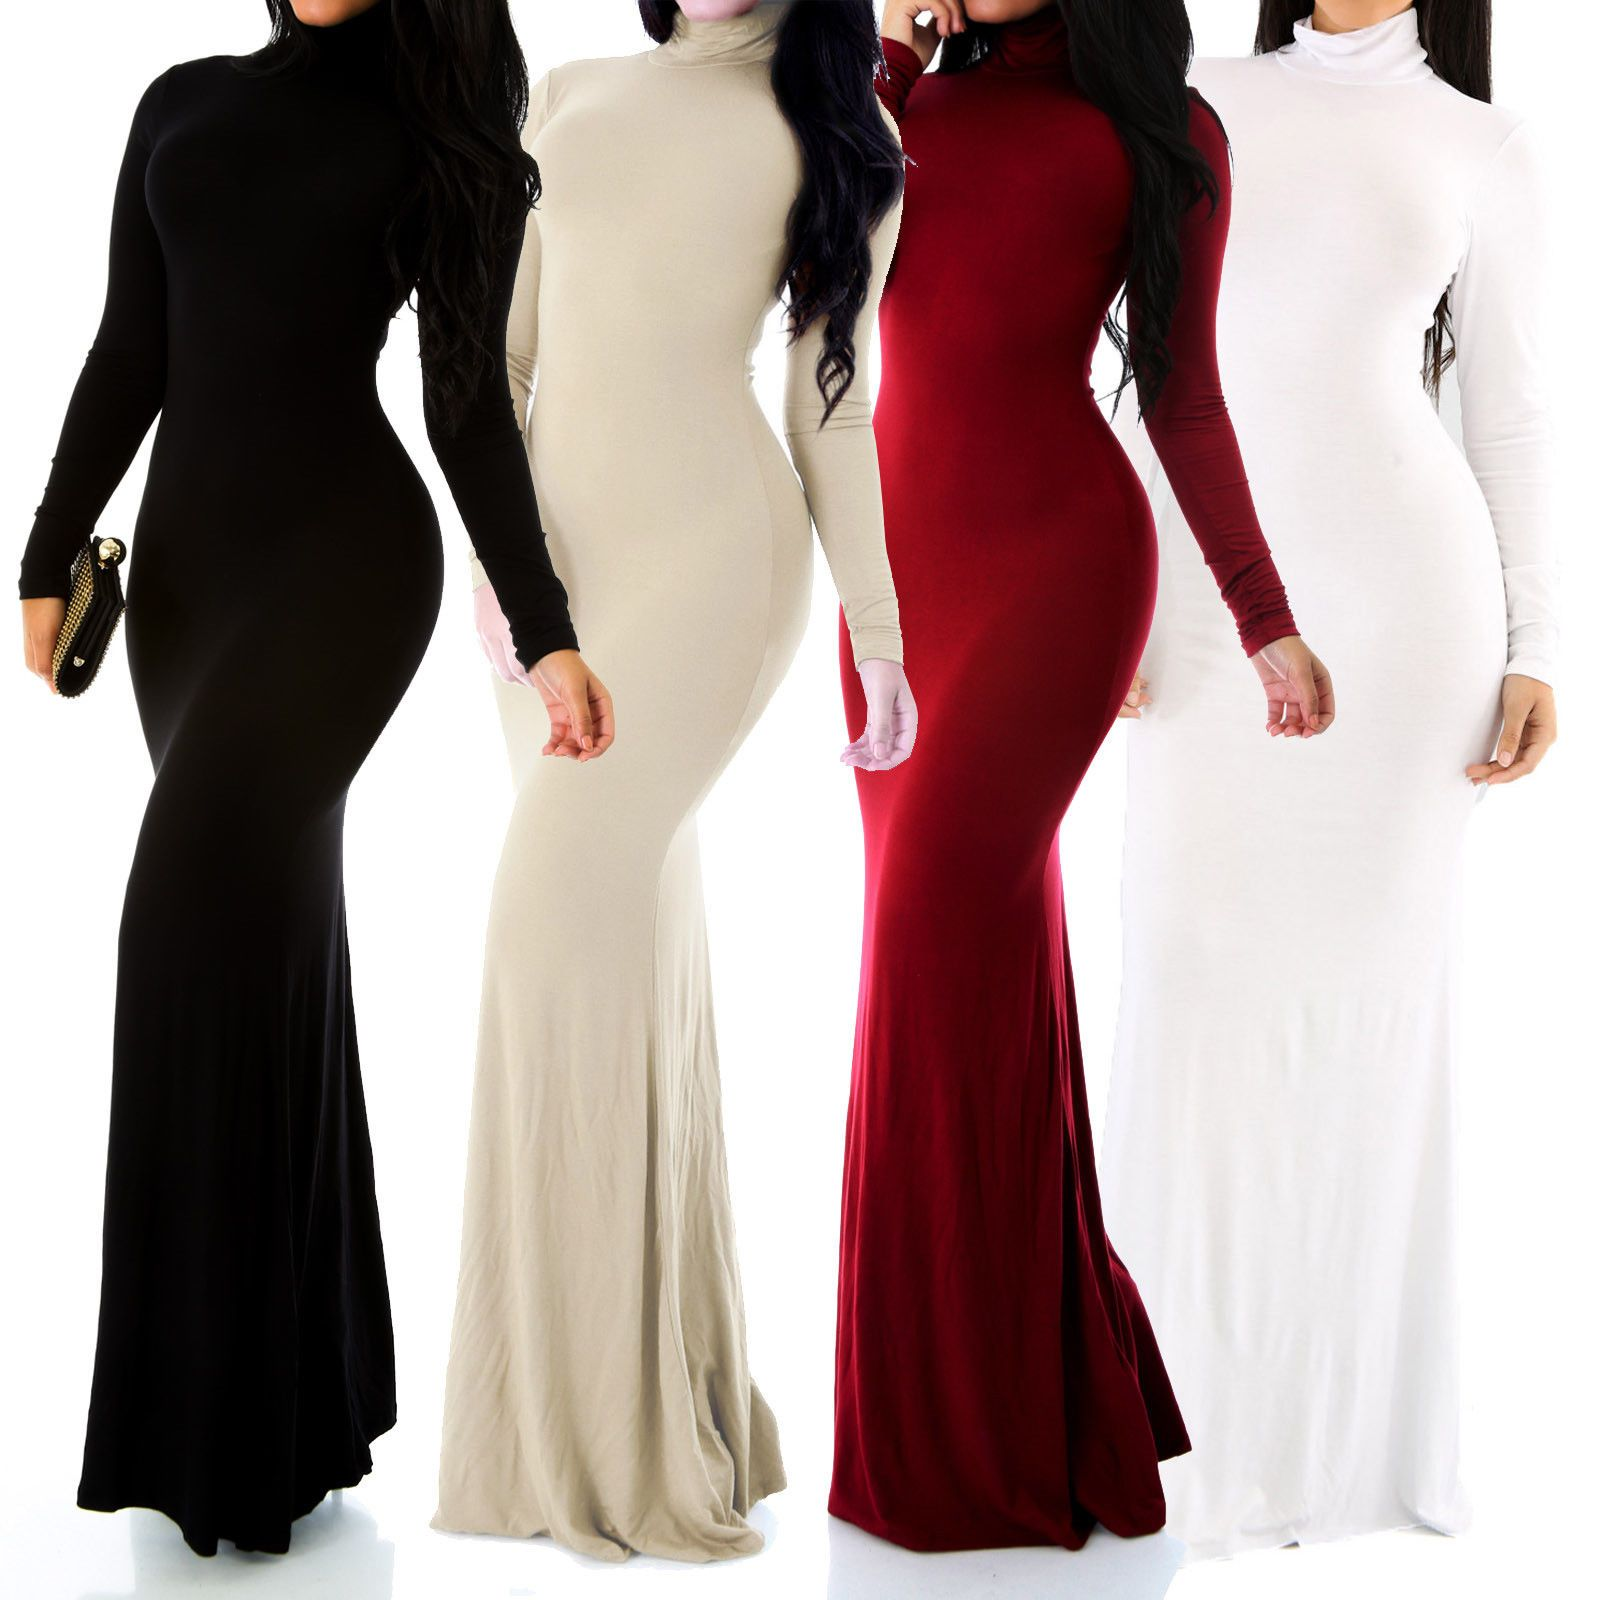 04c703670d802 New Sexy Fitted Long Sleeve Turtleneck Bodycon Maxi Long Dress Size ...